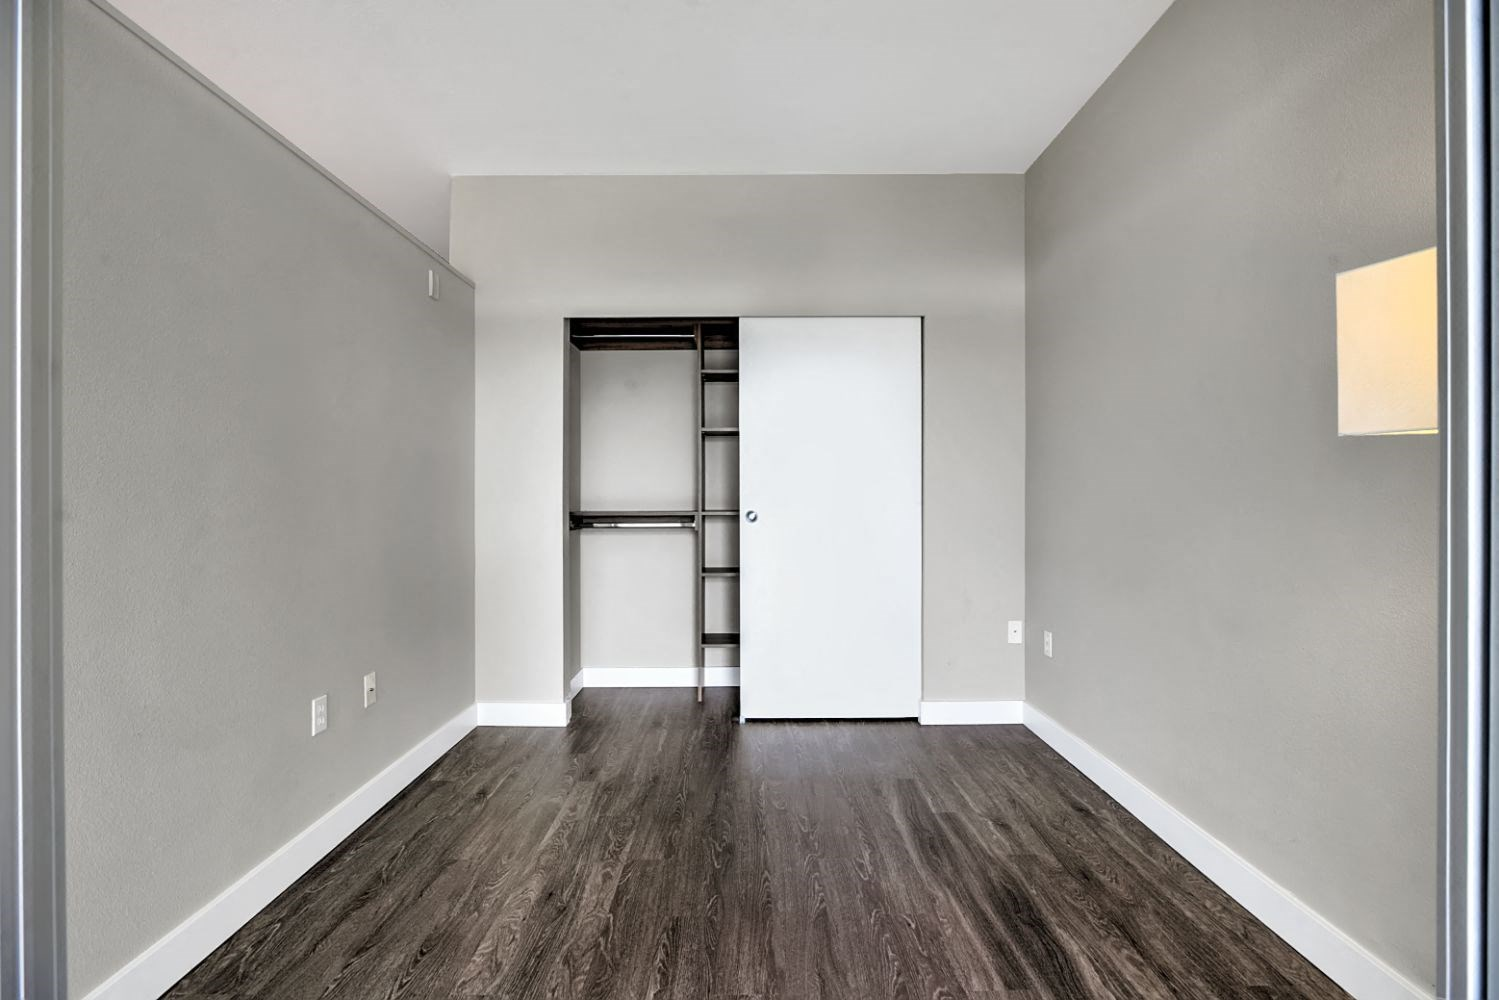 Model Unit- Large Walk-In Closet at Mural, Washington, 98116